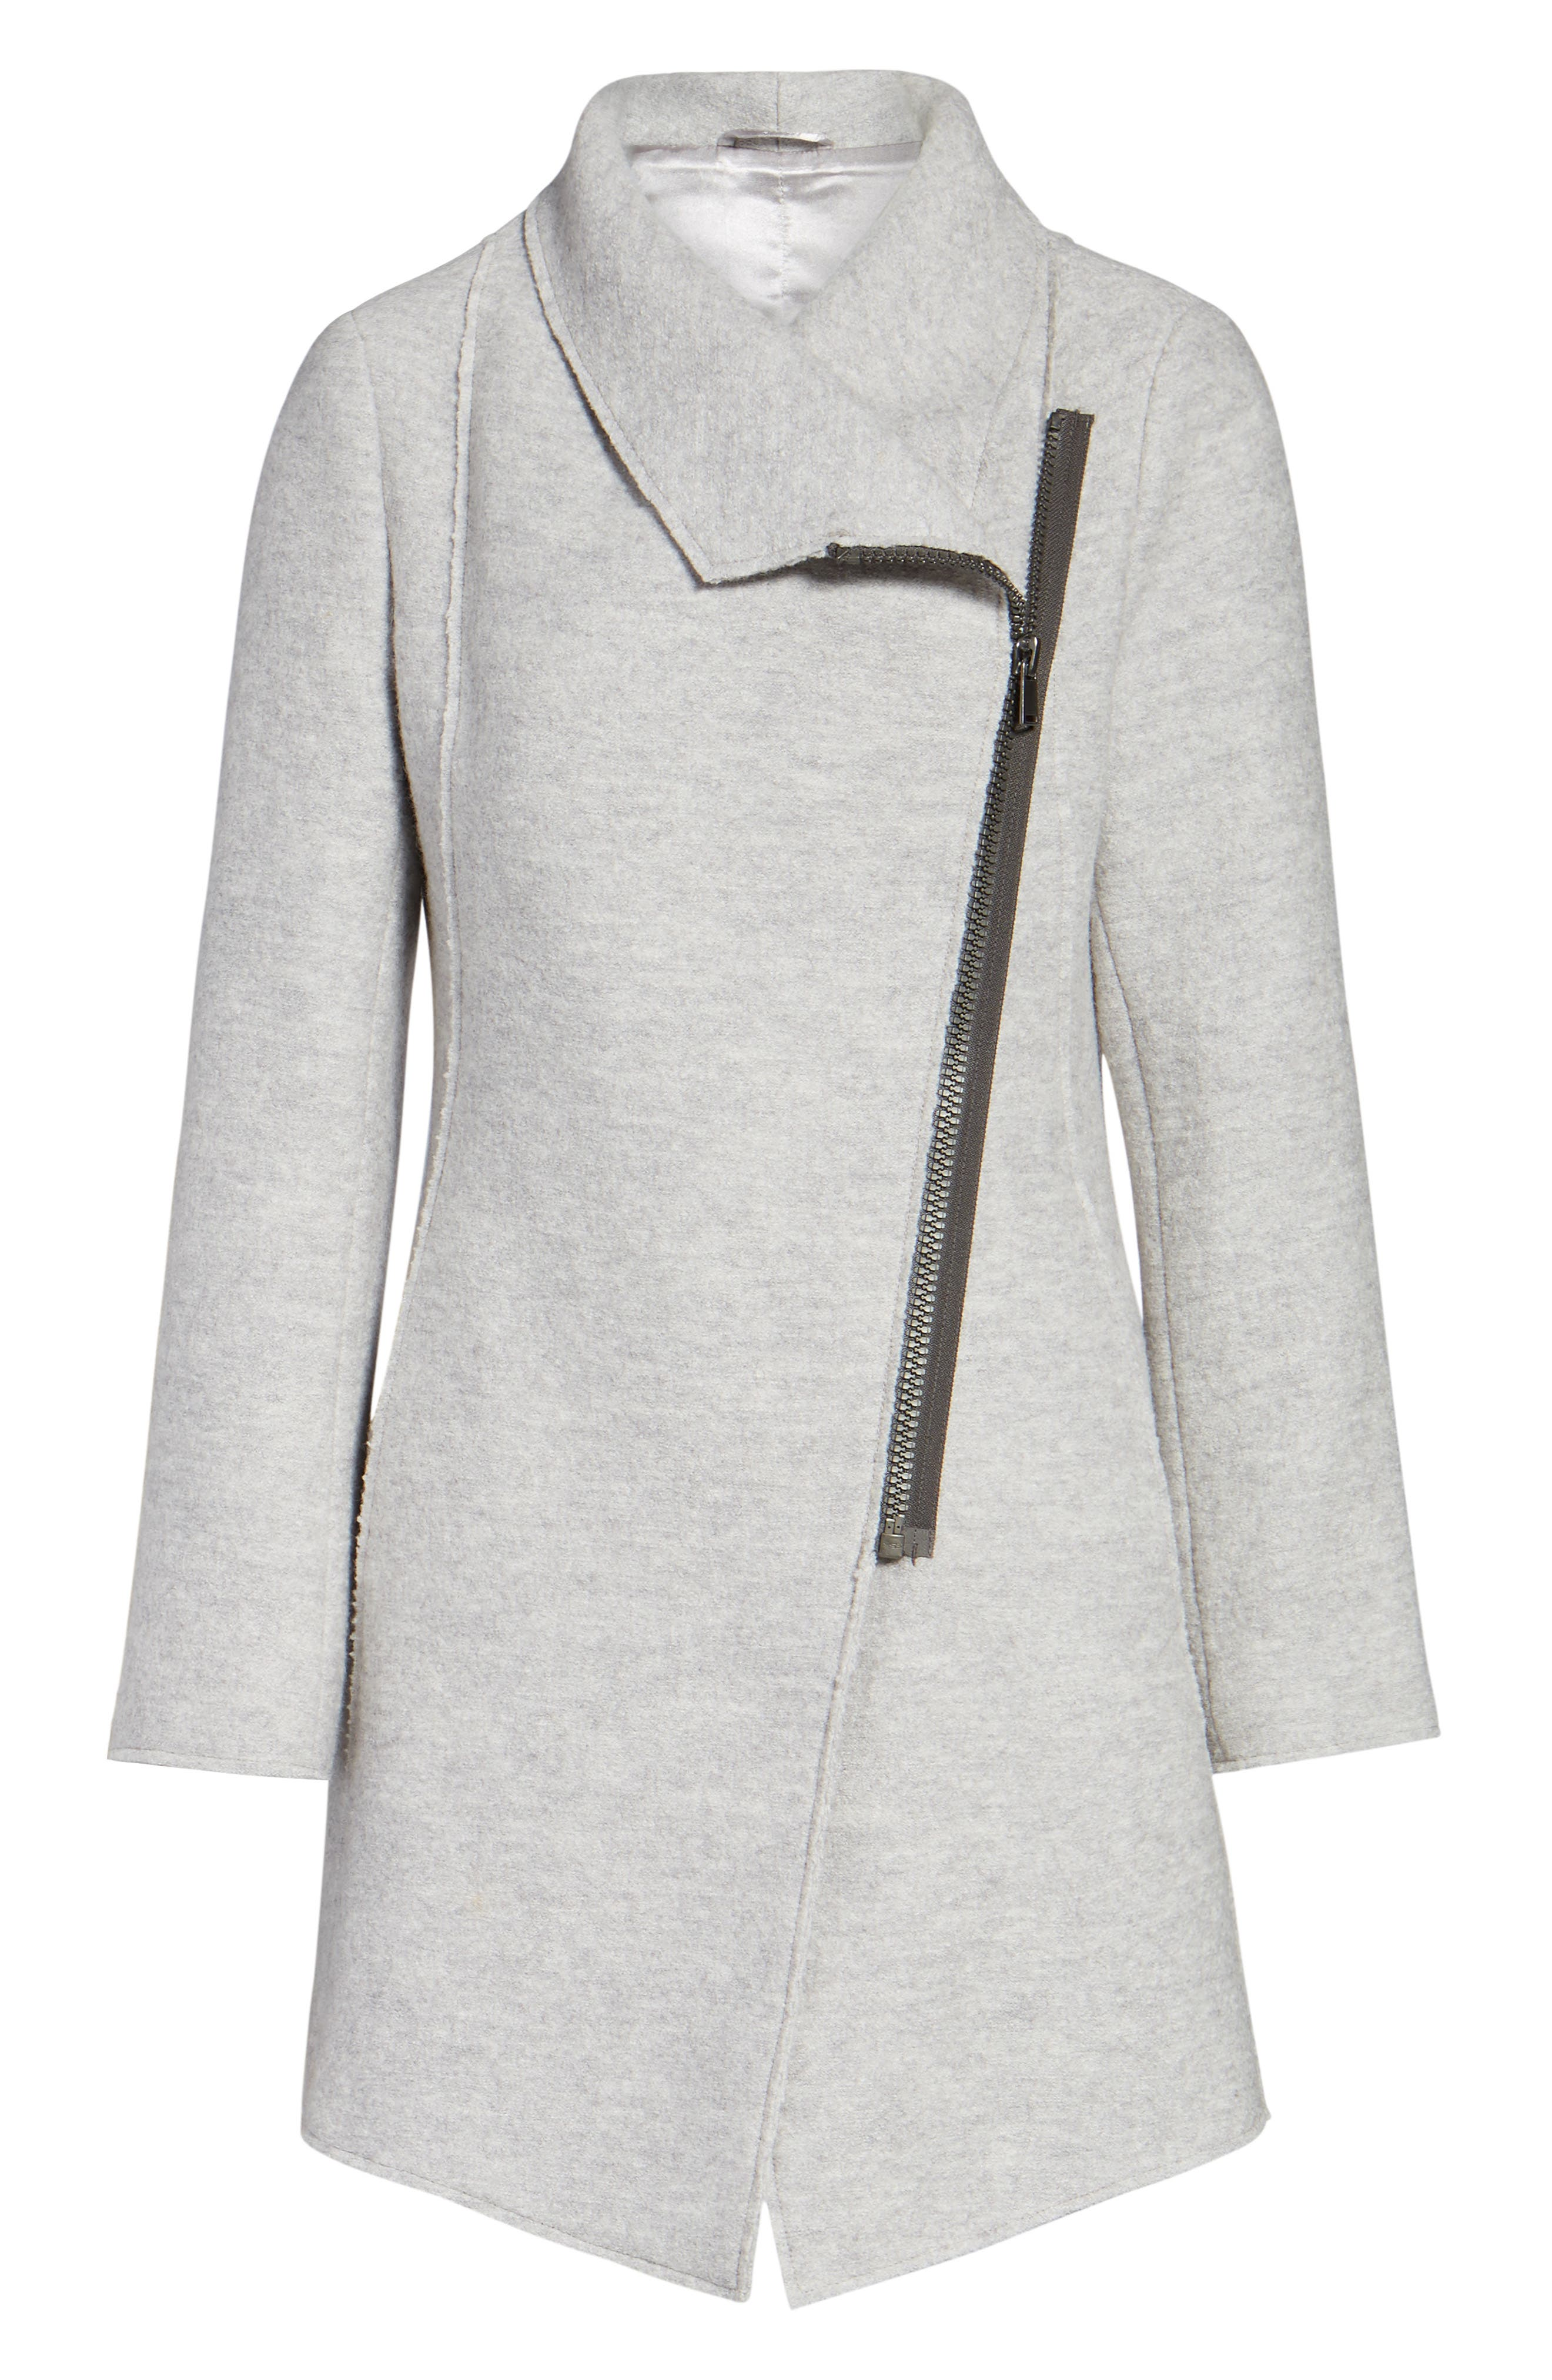 Asymmetrical Zip Boiled Wool Blend Coat,                             Alternate thumbnail 6, color,                             GREY DOVE